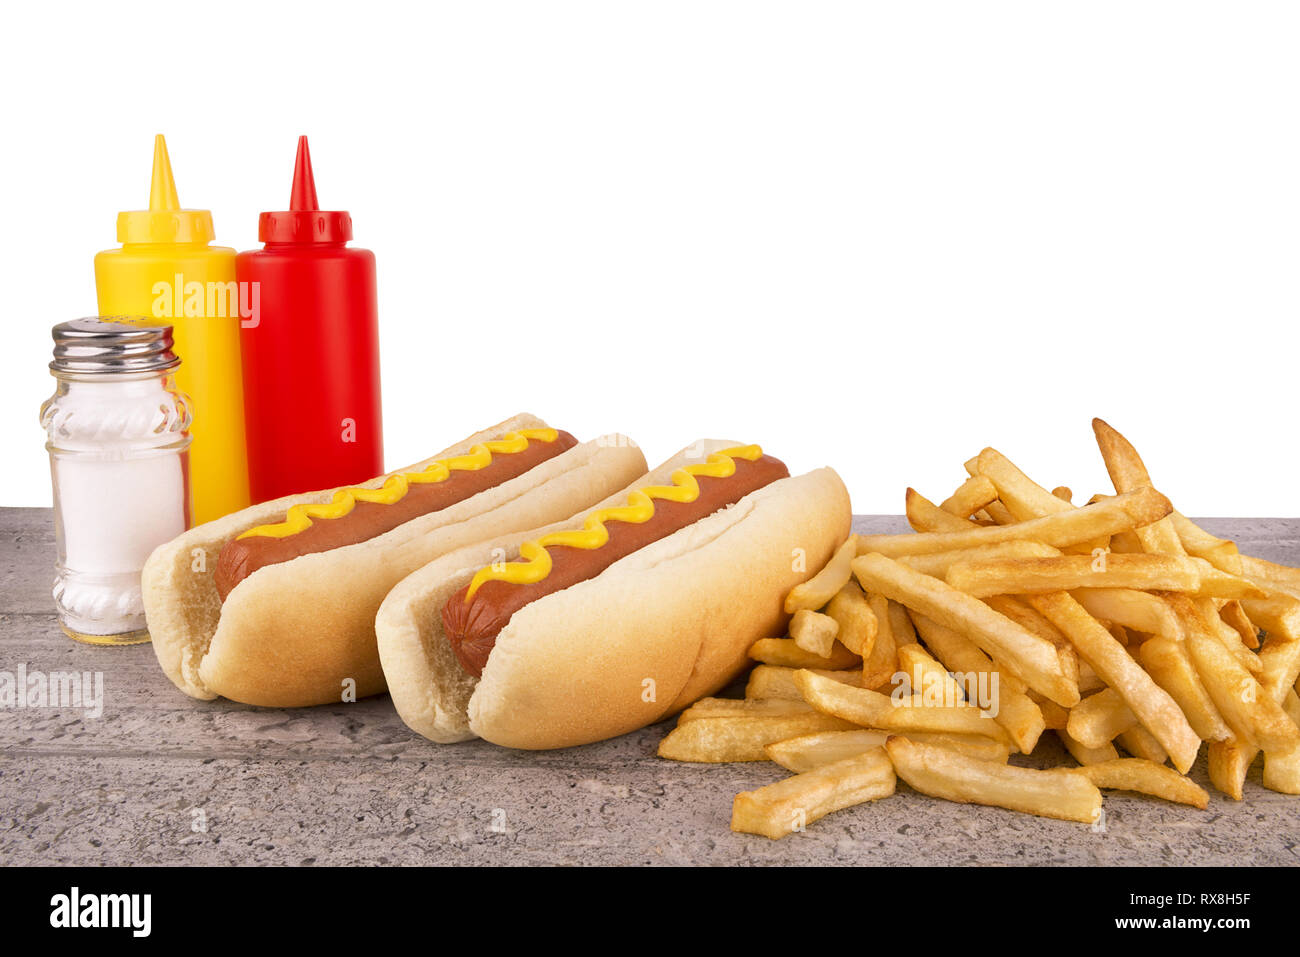 Duo of hot dogs and french fries on table. Fast food restaurant concept. Copy space for your text. - Stock Image